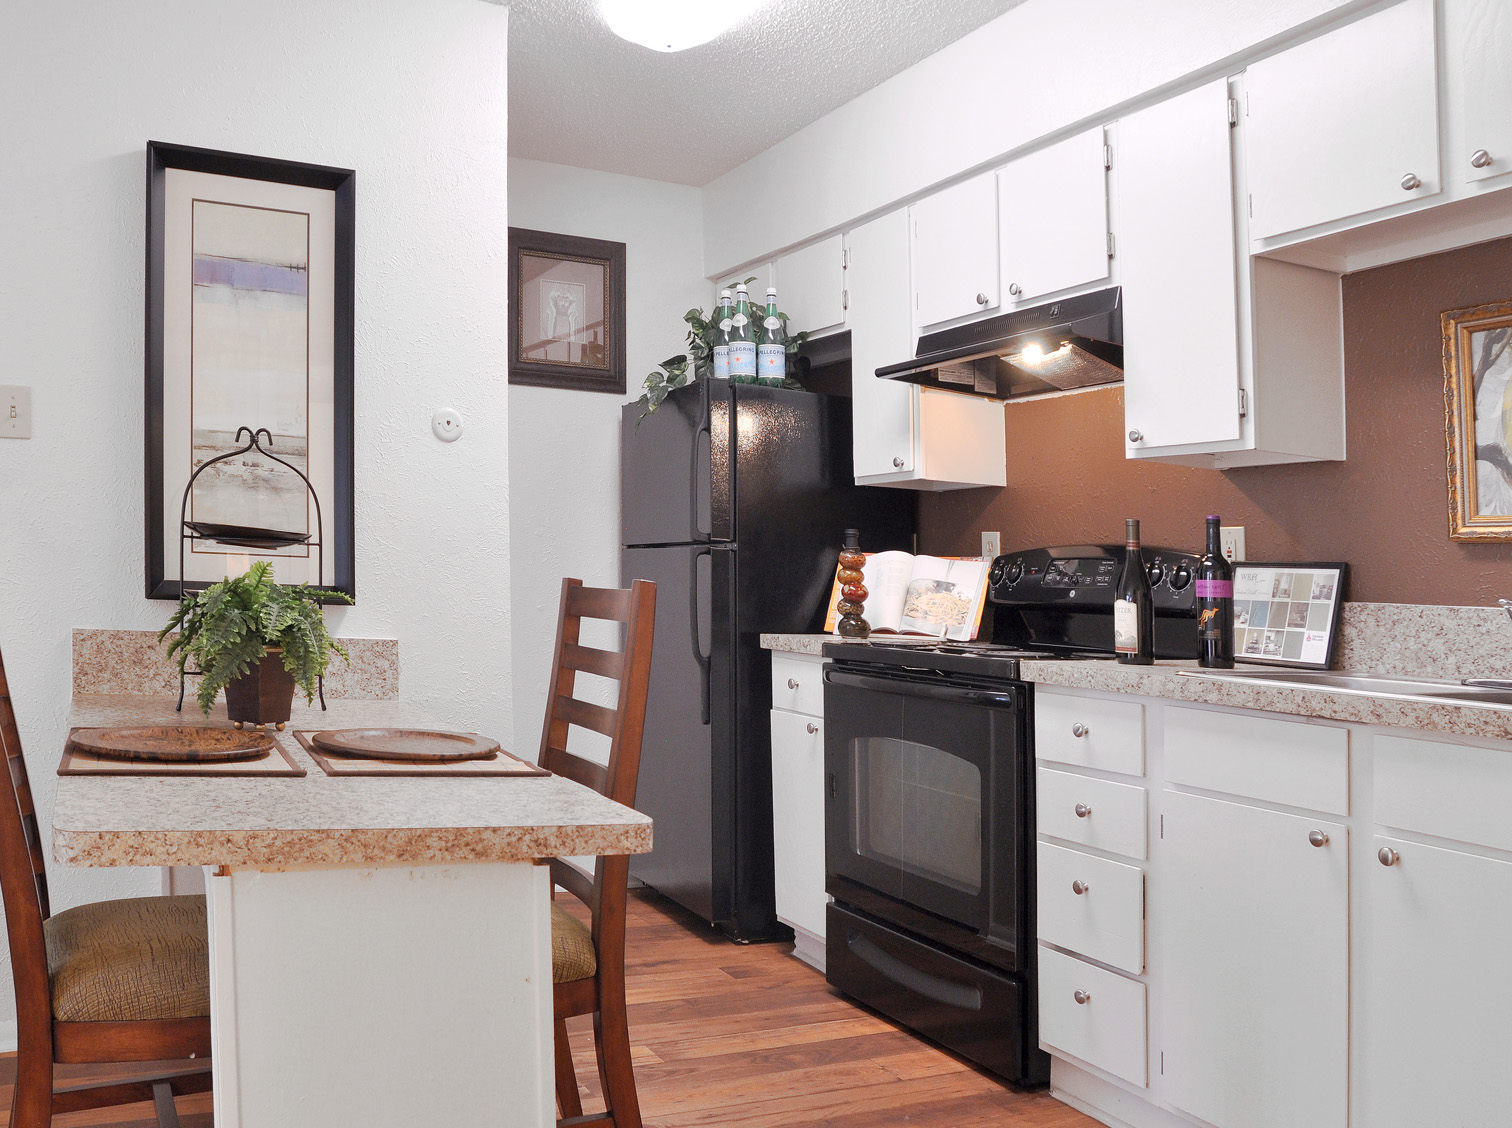 Kitchen | Apartment Homes in Dallas, TX | Deerfield Apartments